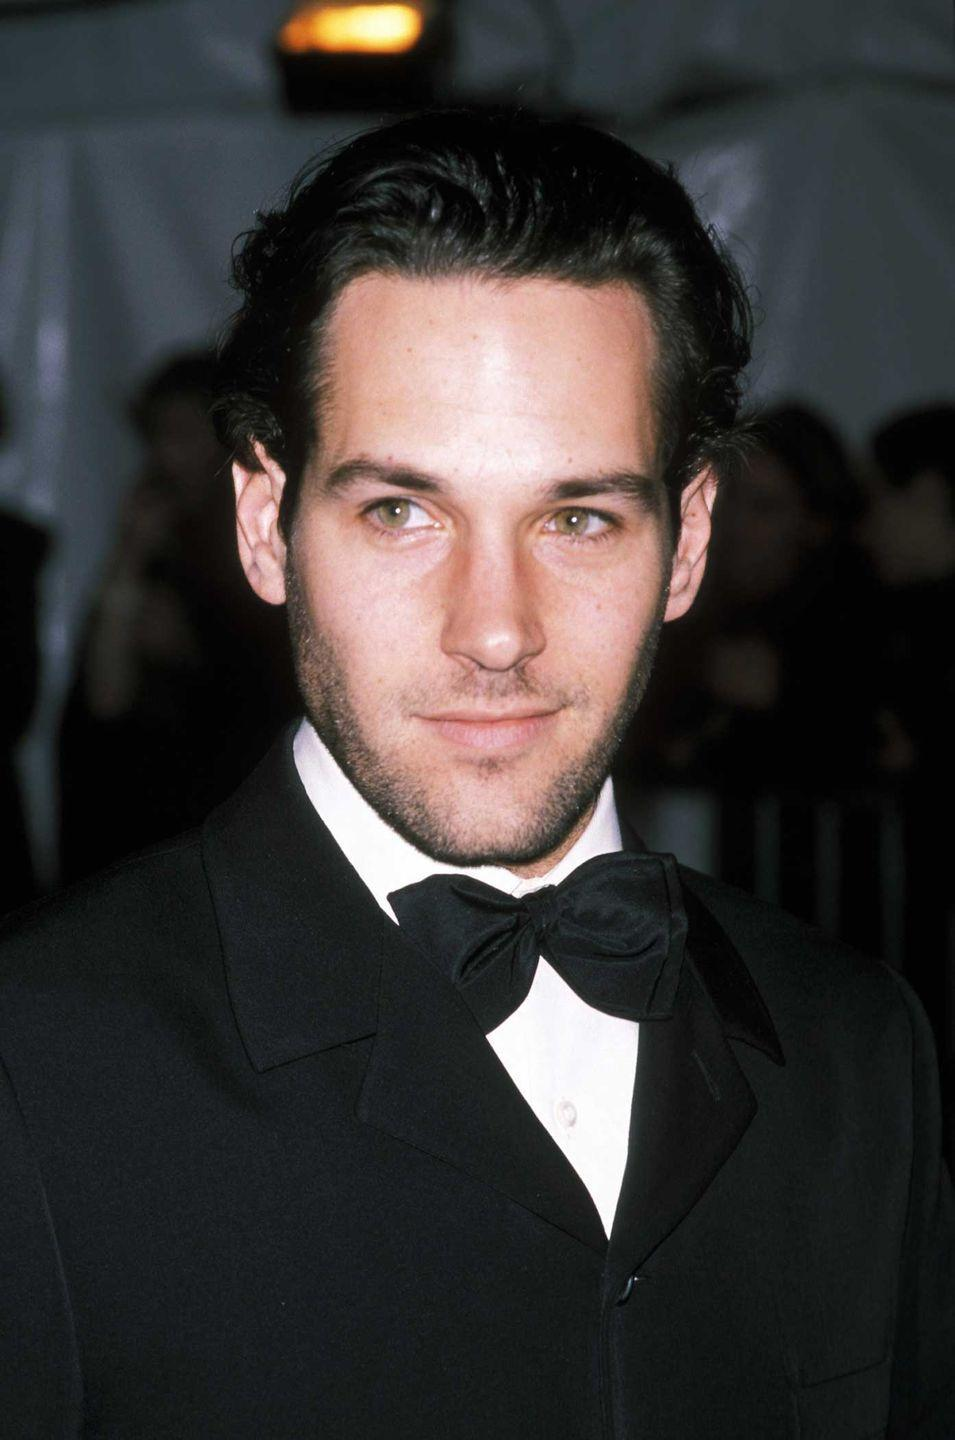 <p>This photo is from 1998 at a gala in New York City, and is clear proof Paul Rudd does not age at all. </p>